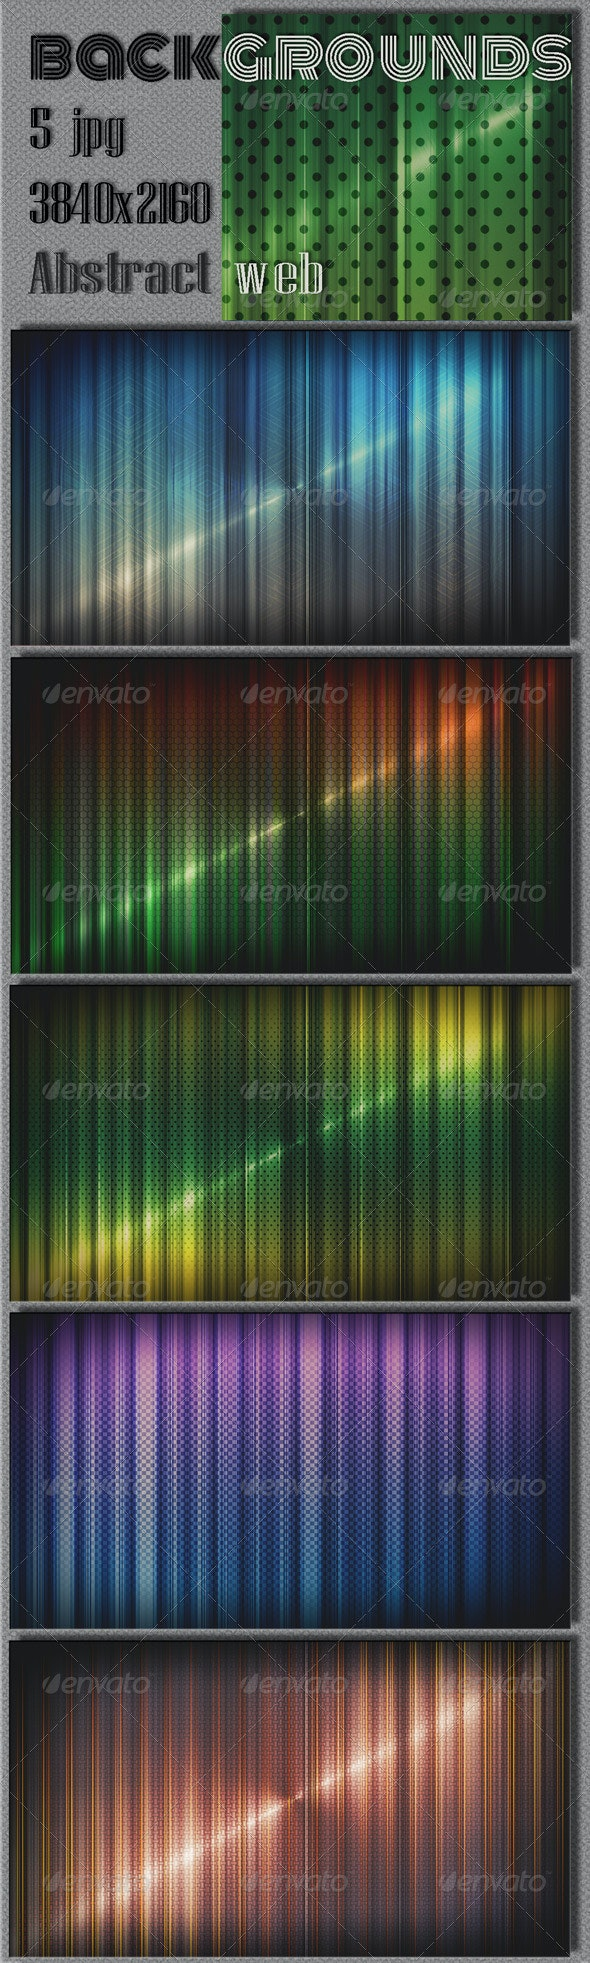 Colorful Techno Wall Backgrounds - Tech / Futuristic Backgrounds